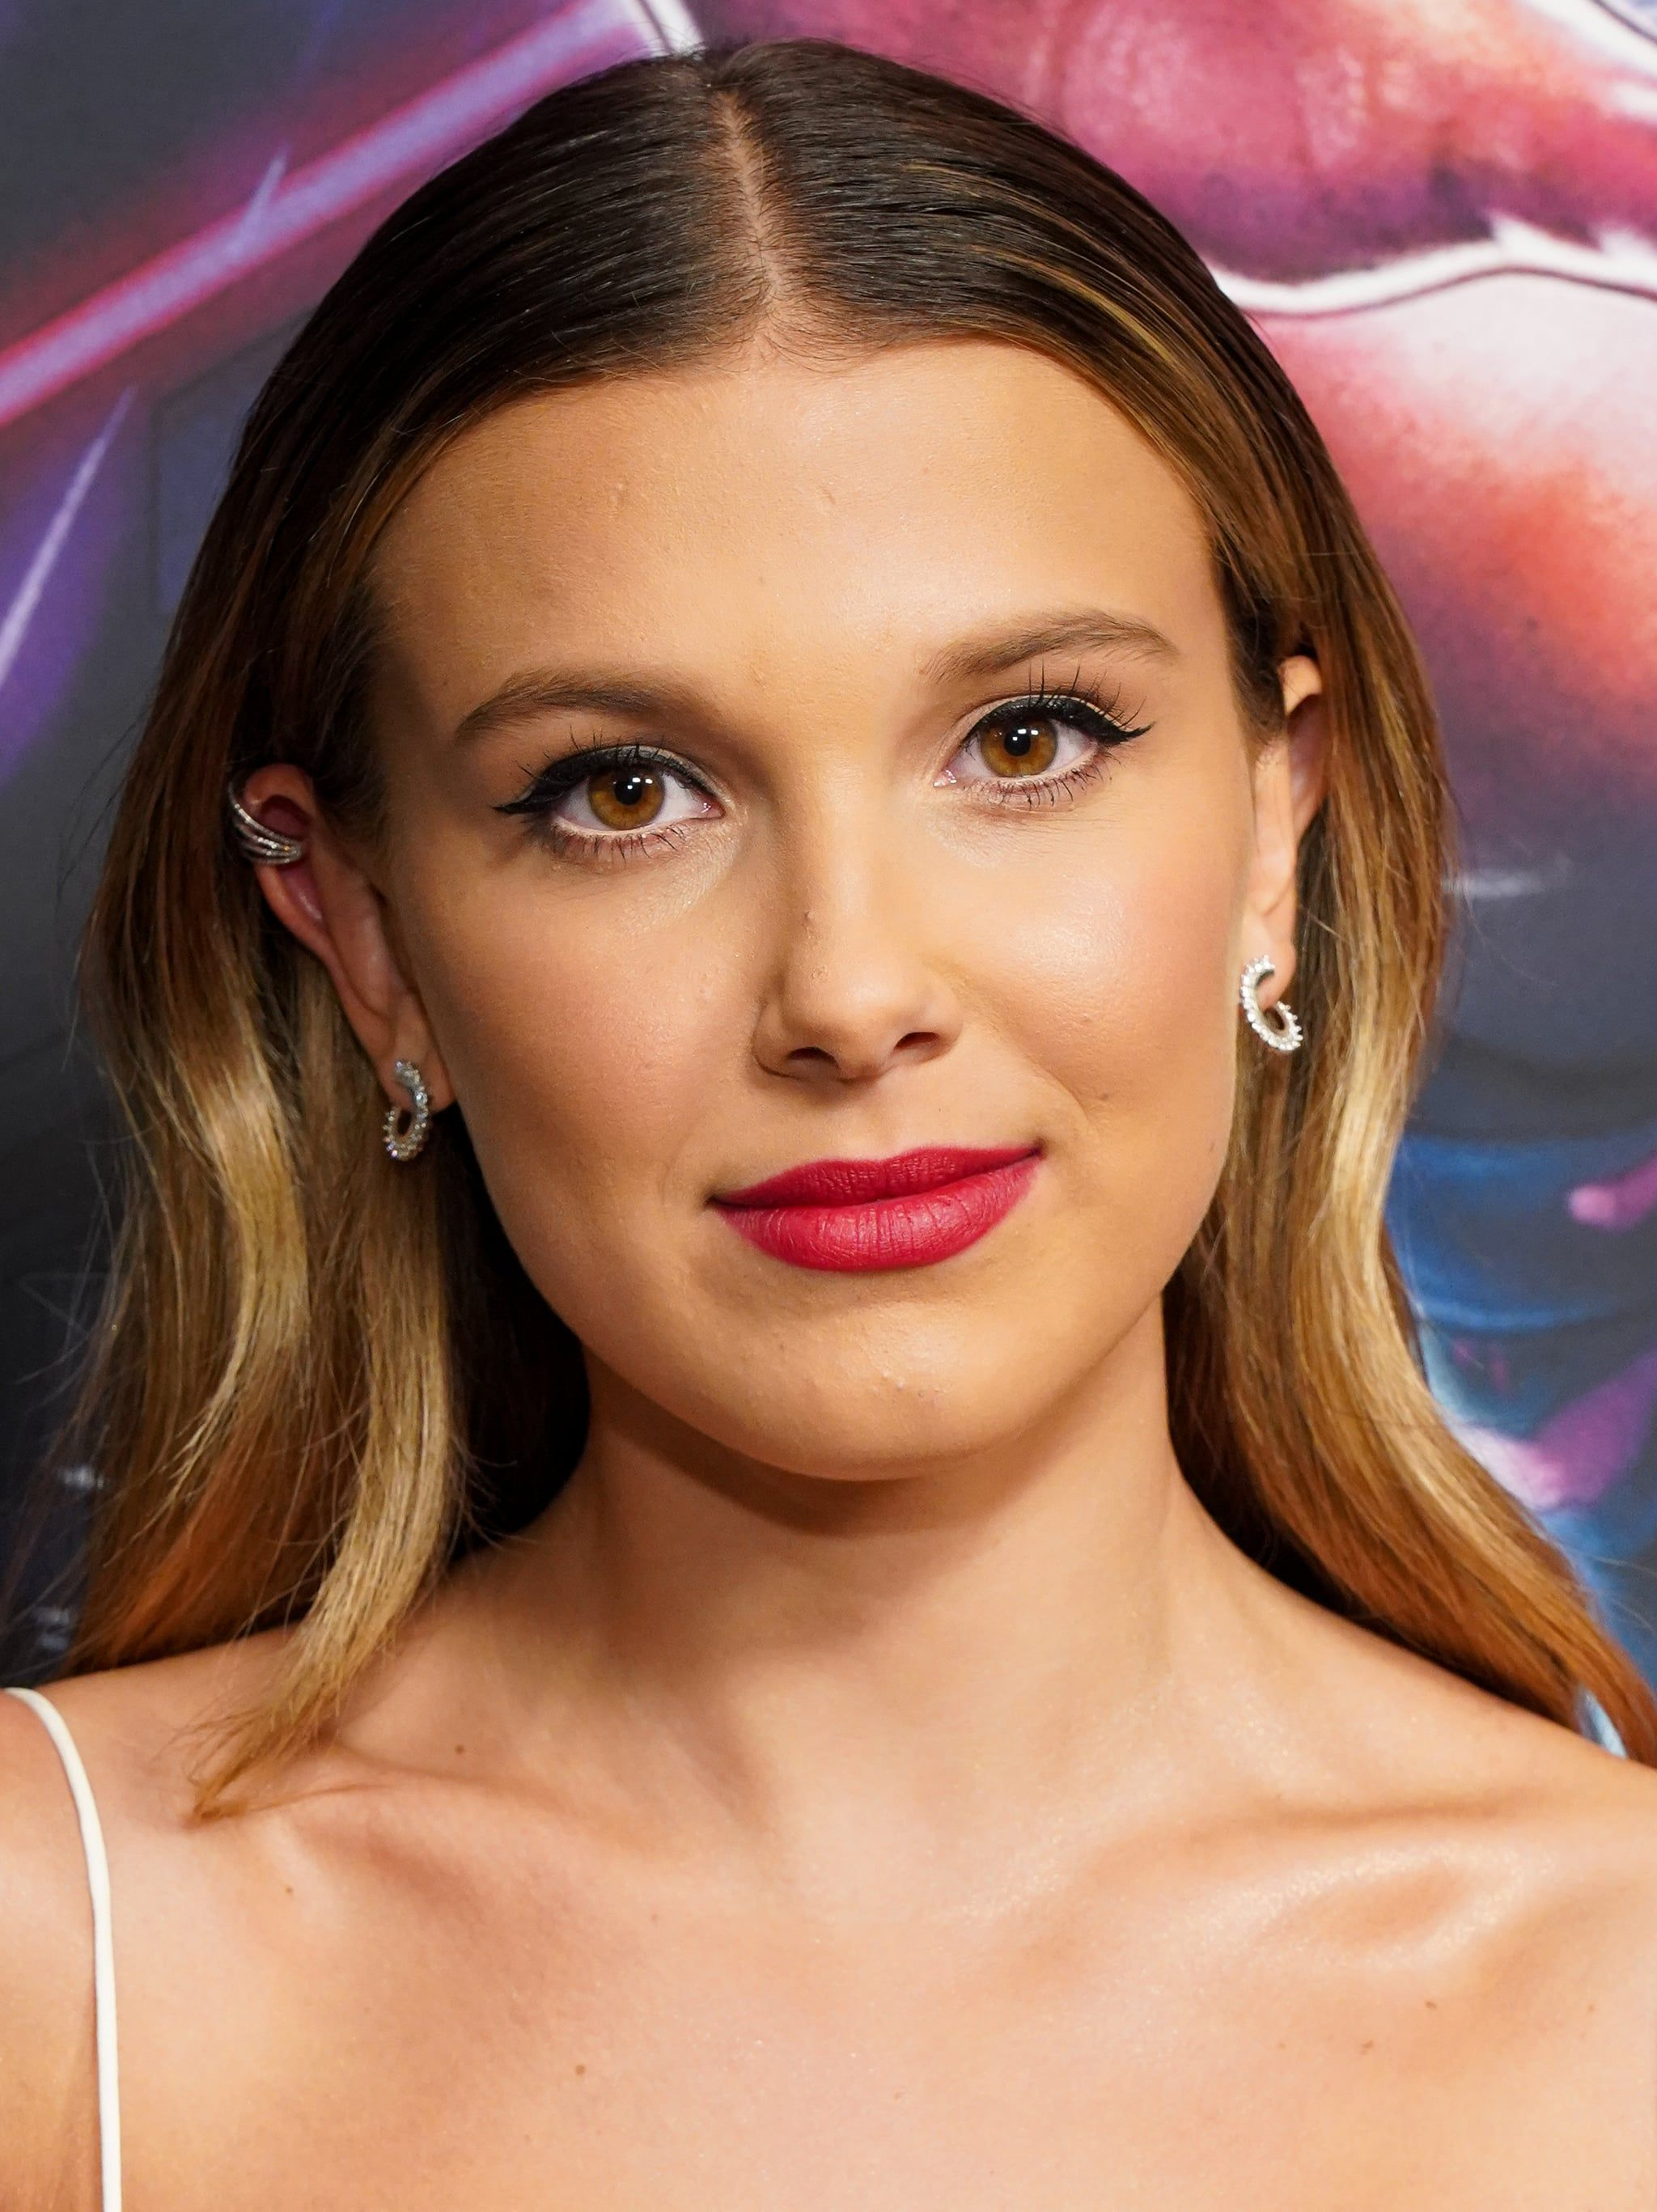 Millie Bobby Brown Used This Age Old Makeup Hack To Make Her Eyes Look Bigger And Brighter Millie Bobby Brown Old Makeup Bobby Brown Stranger Things